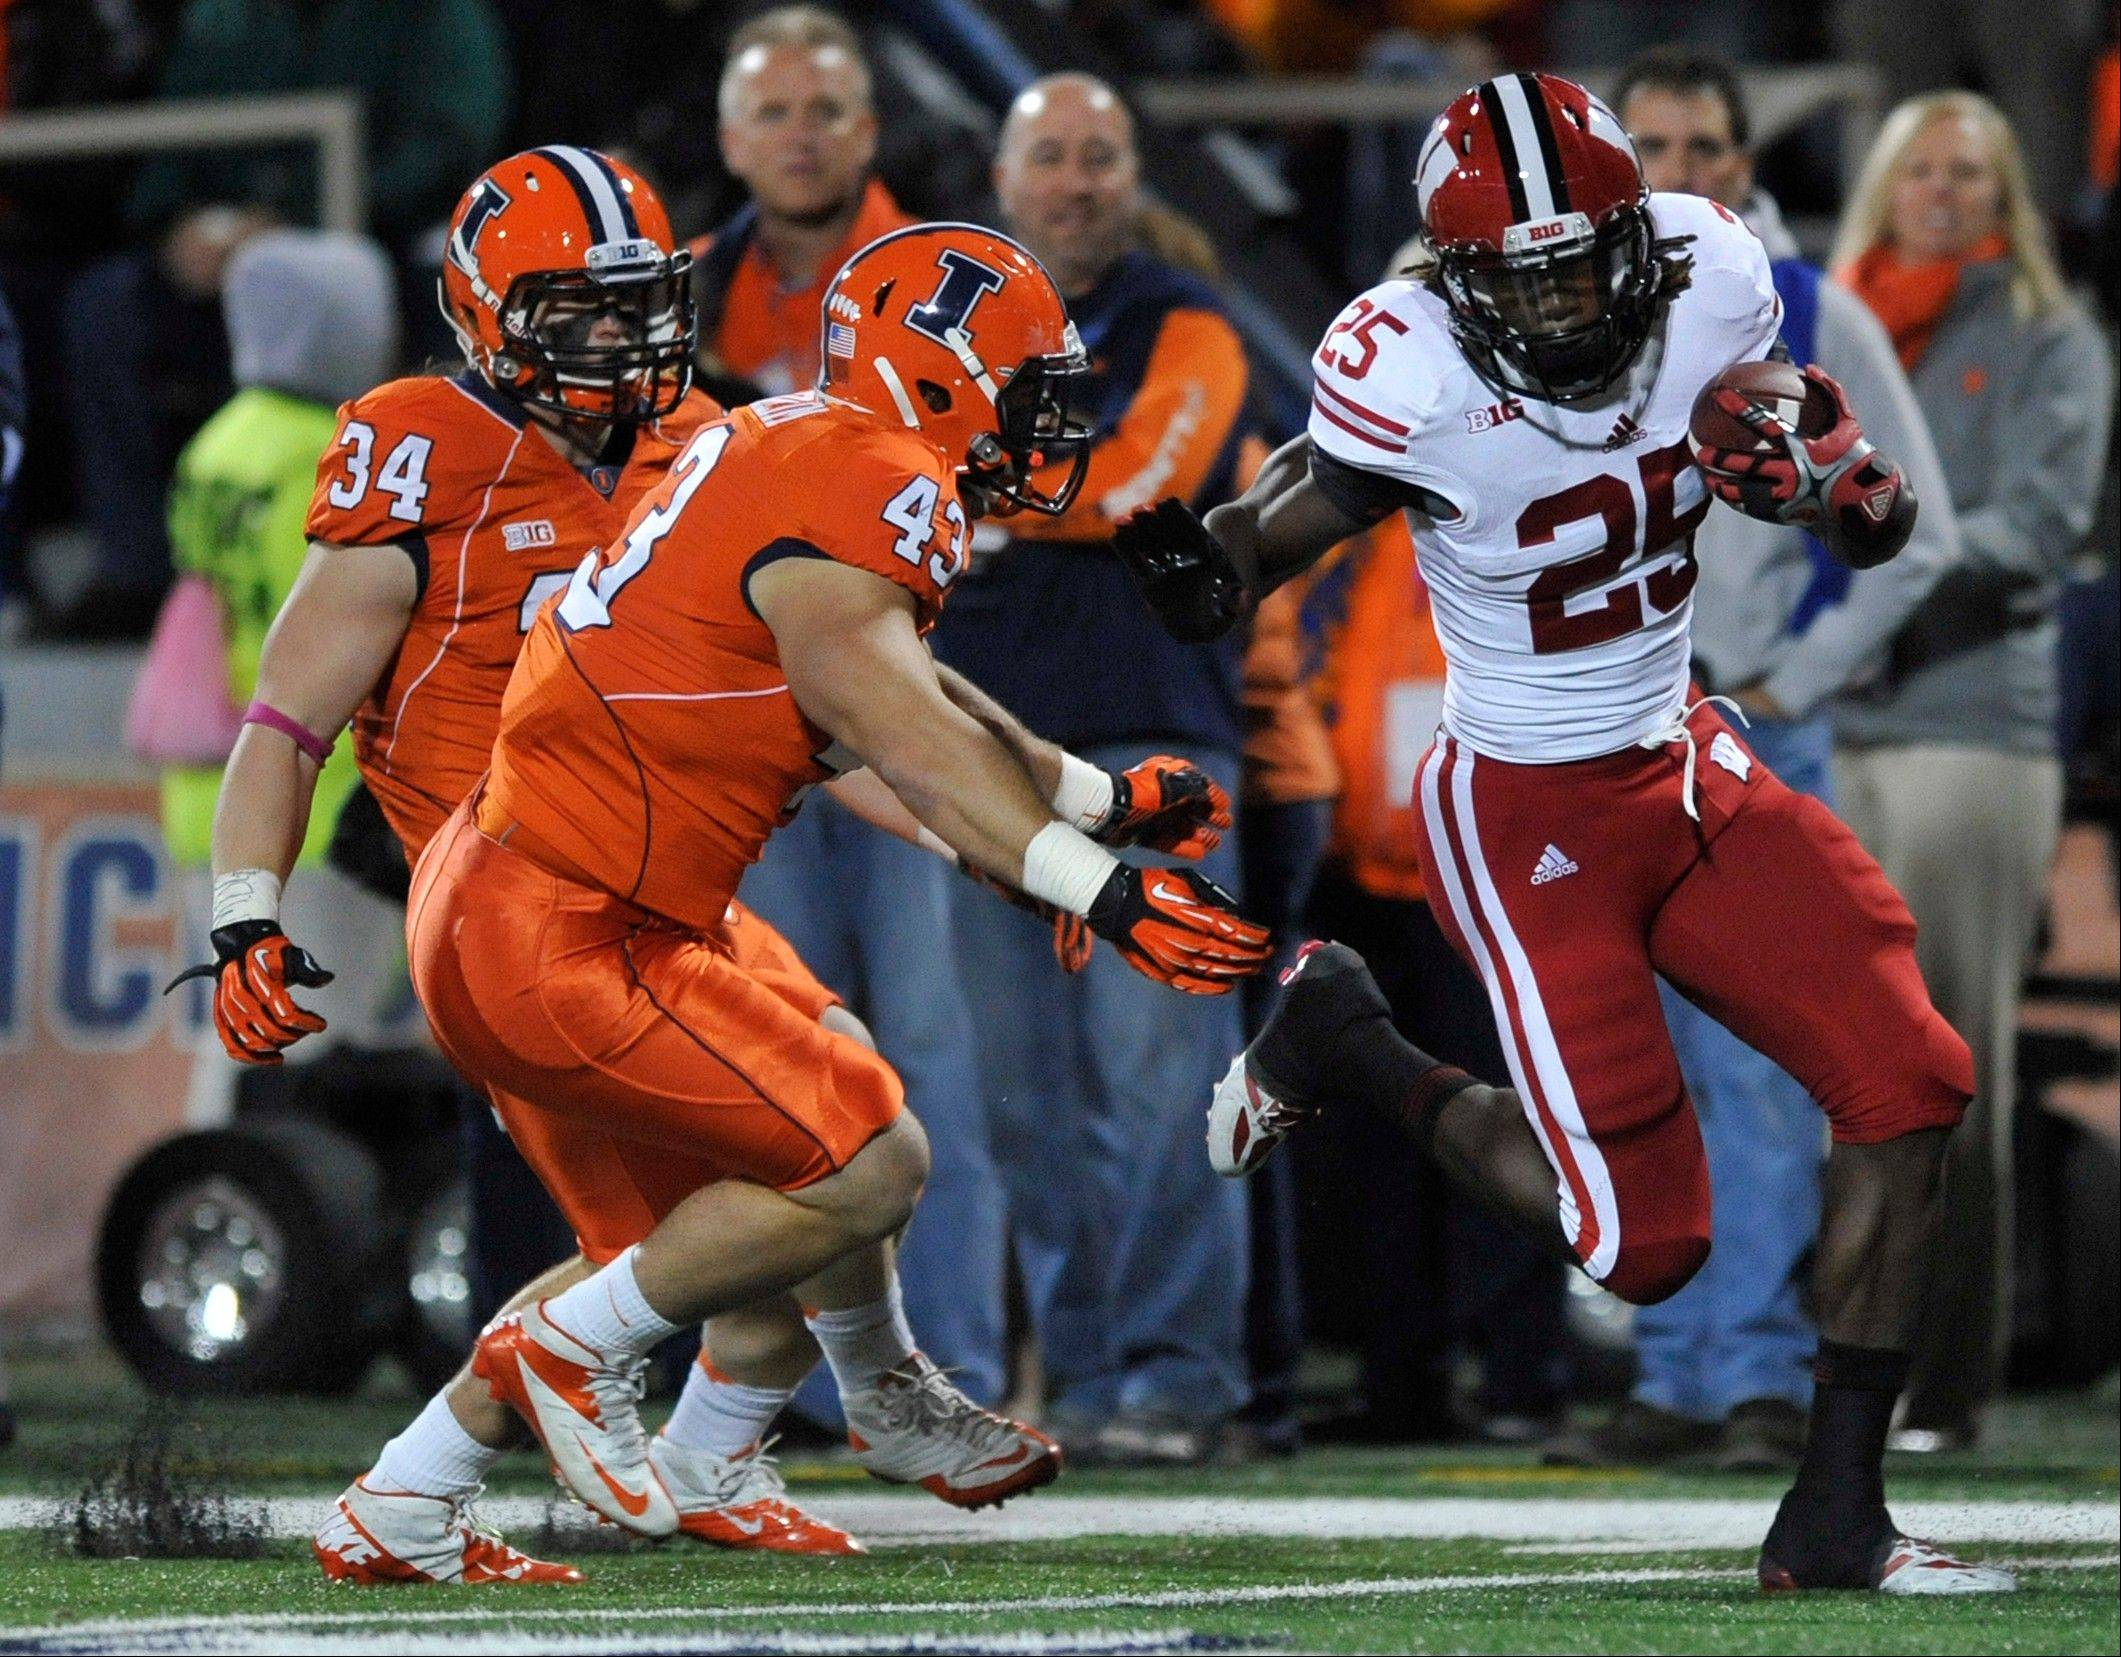 Defense still big problem for Illini